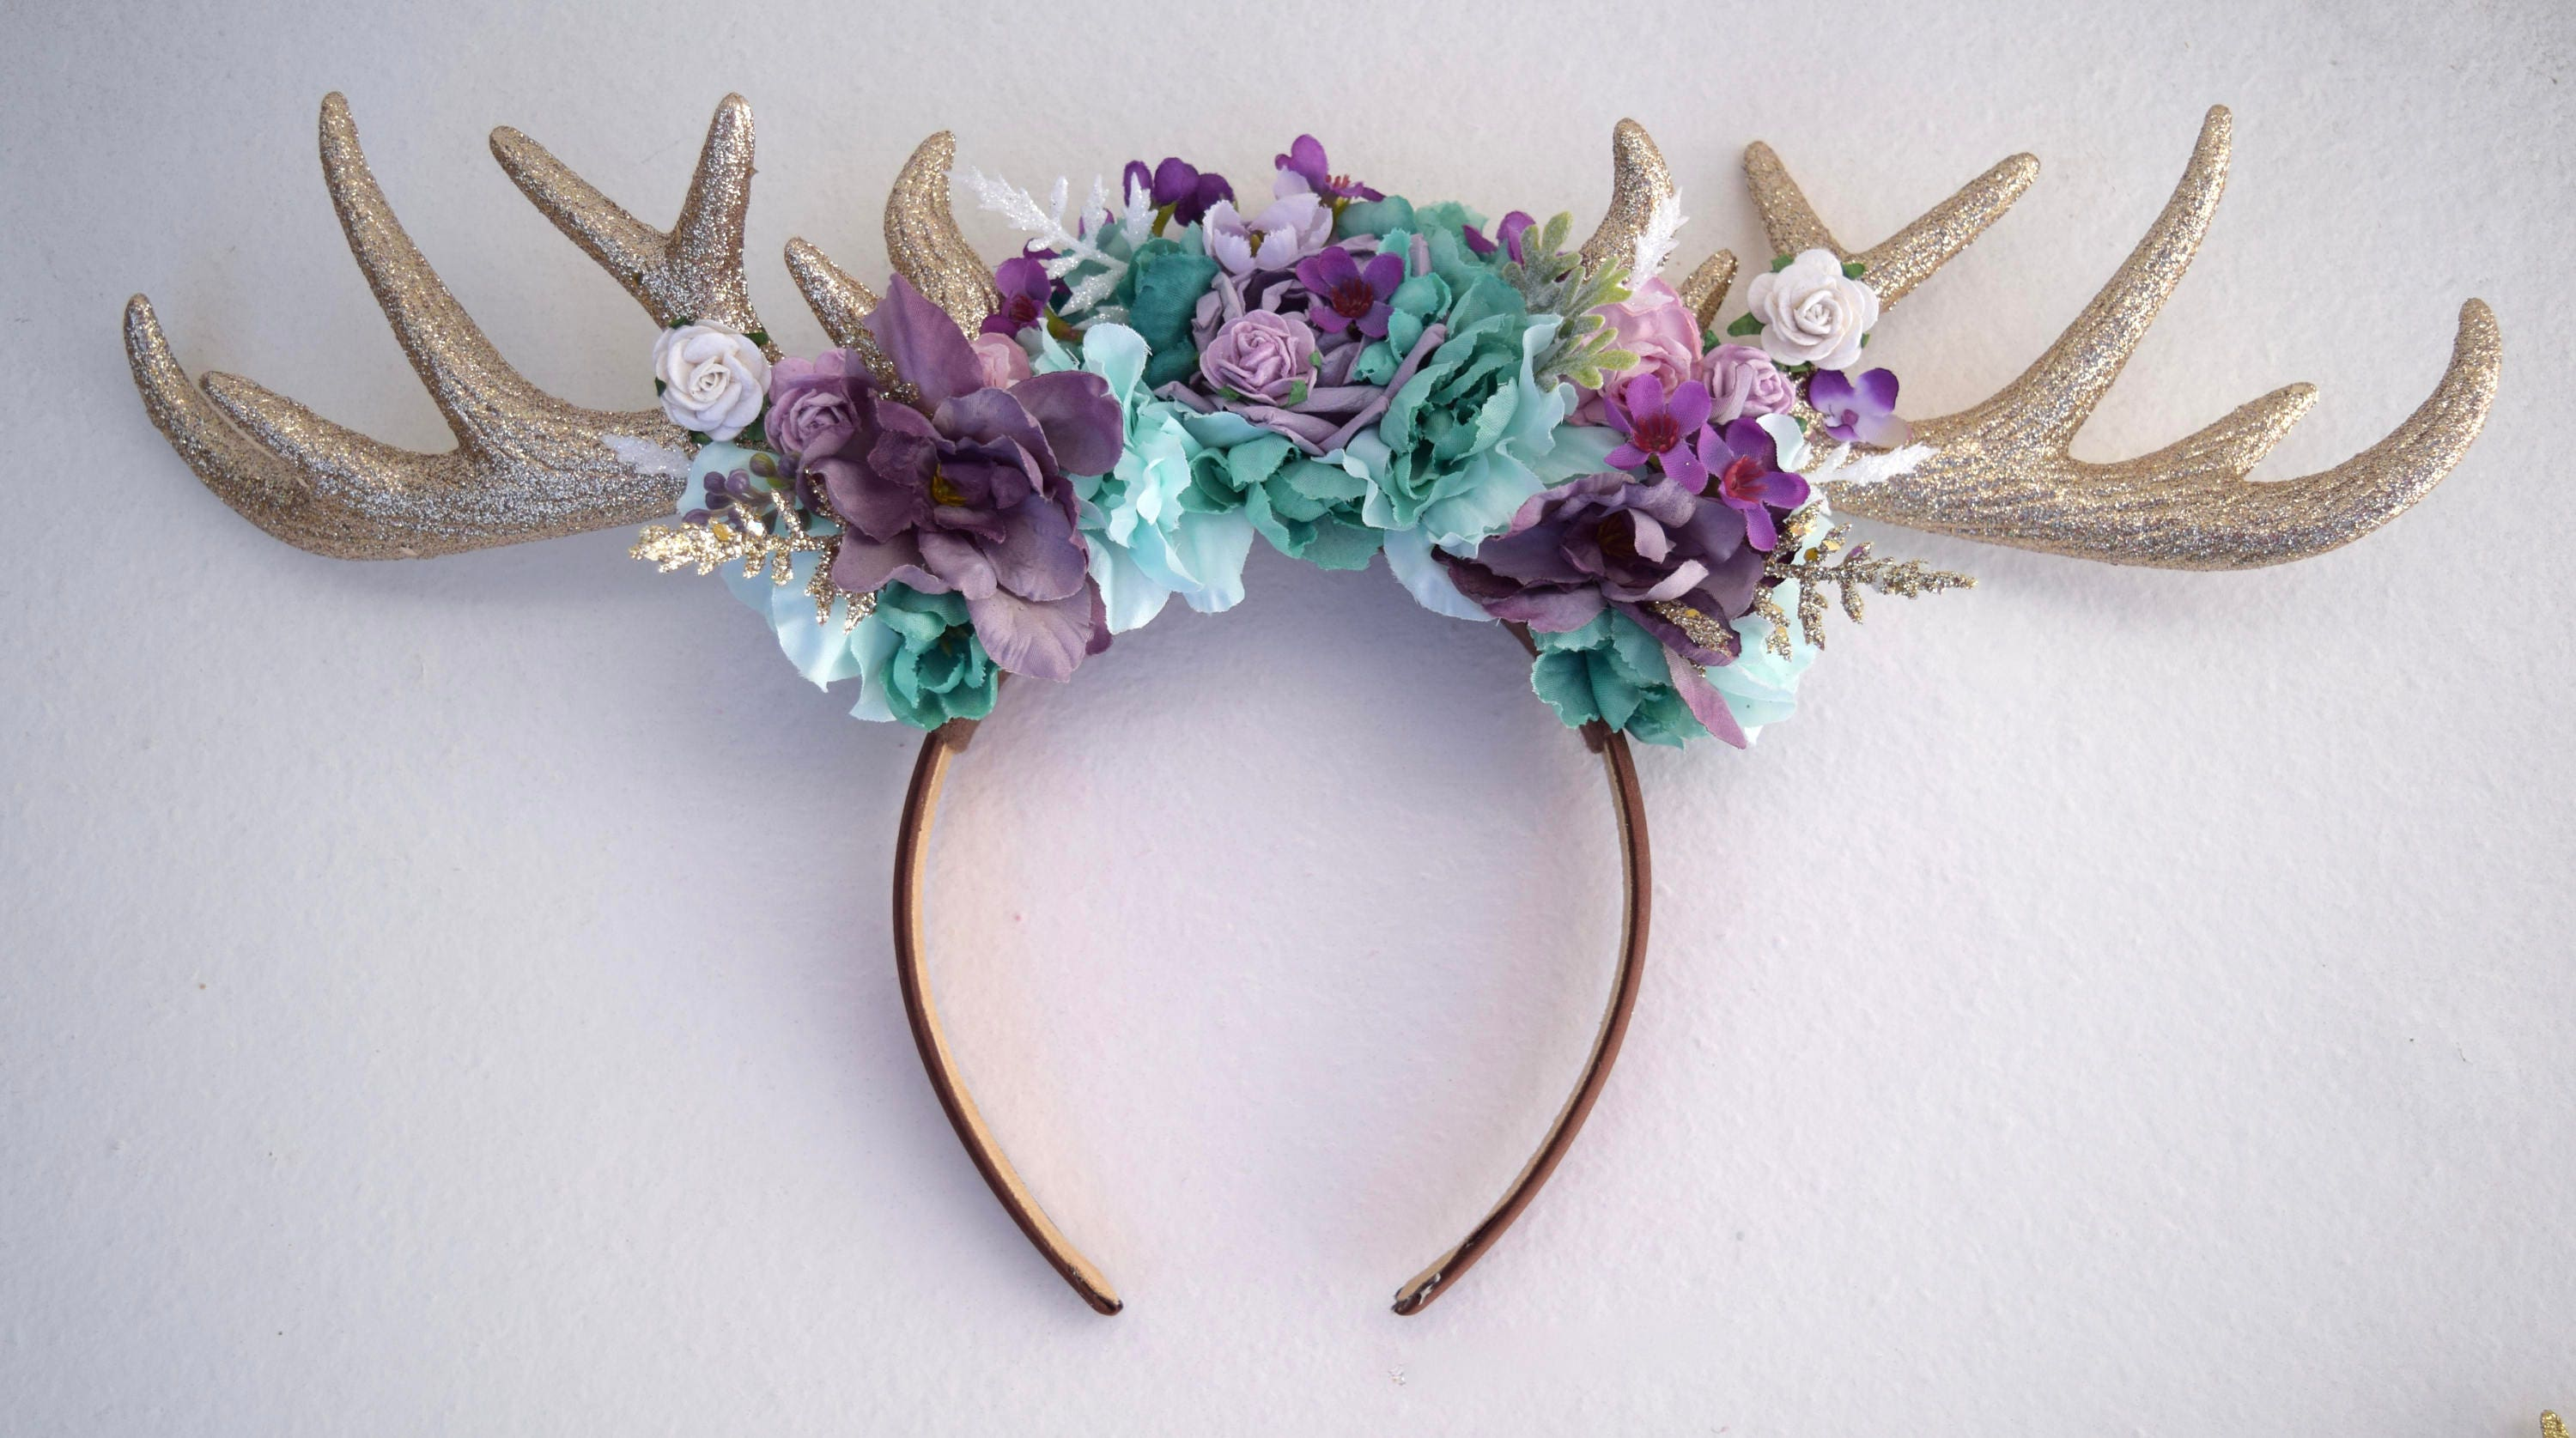 Floral Deer Antler Headband Halloween Deer Antler Headpiece  5f73b5b48a9